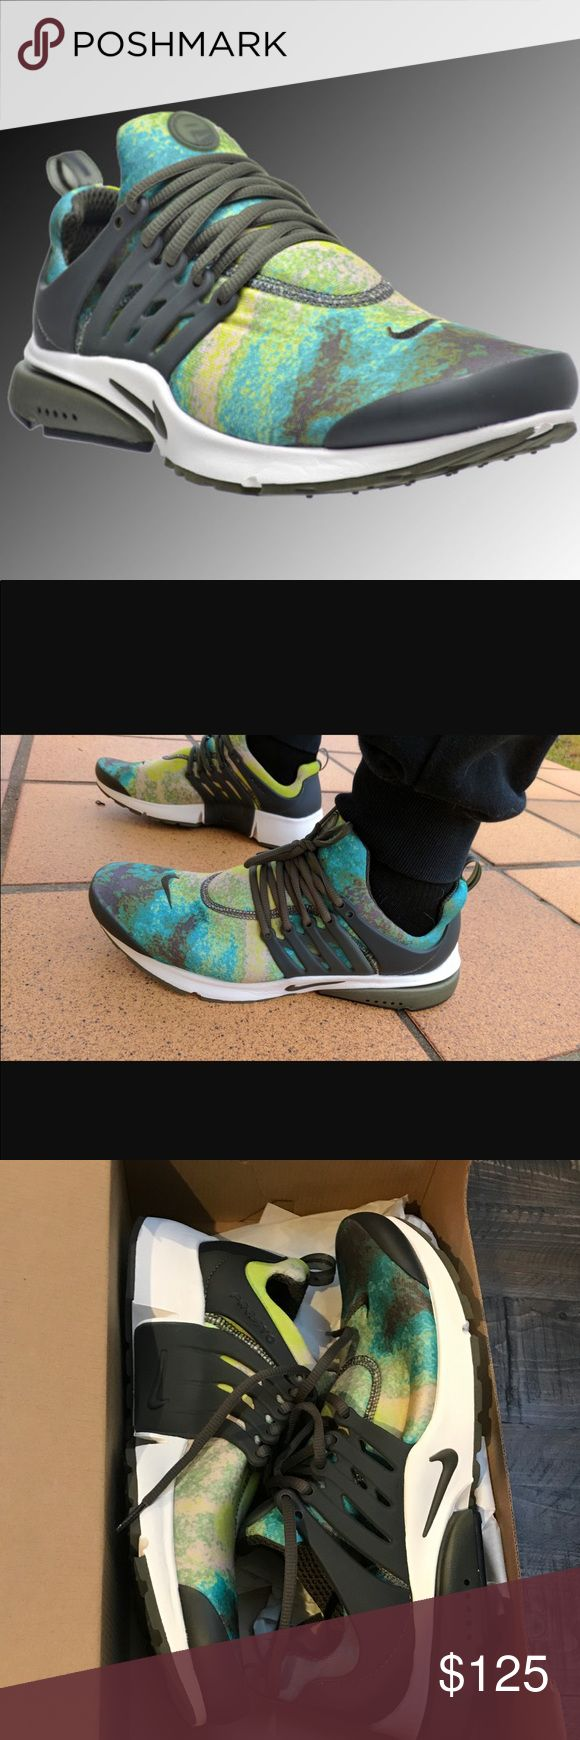 Home nike wmns air presto flyknit ultra midnight turquoise olive - Nwb Nike Air Presto Gpx Rainforest Various Sizes Nwt